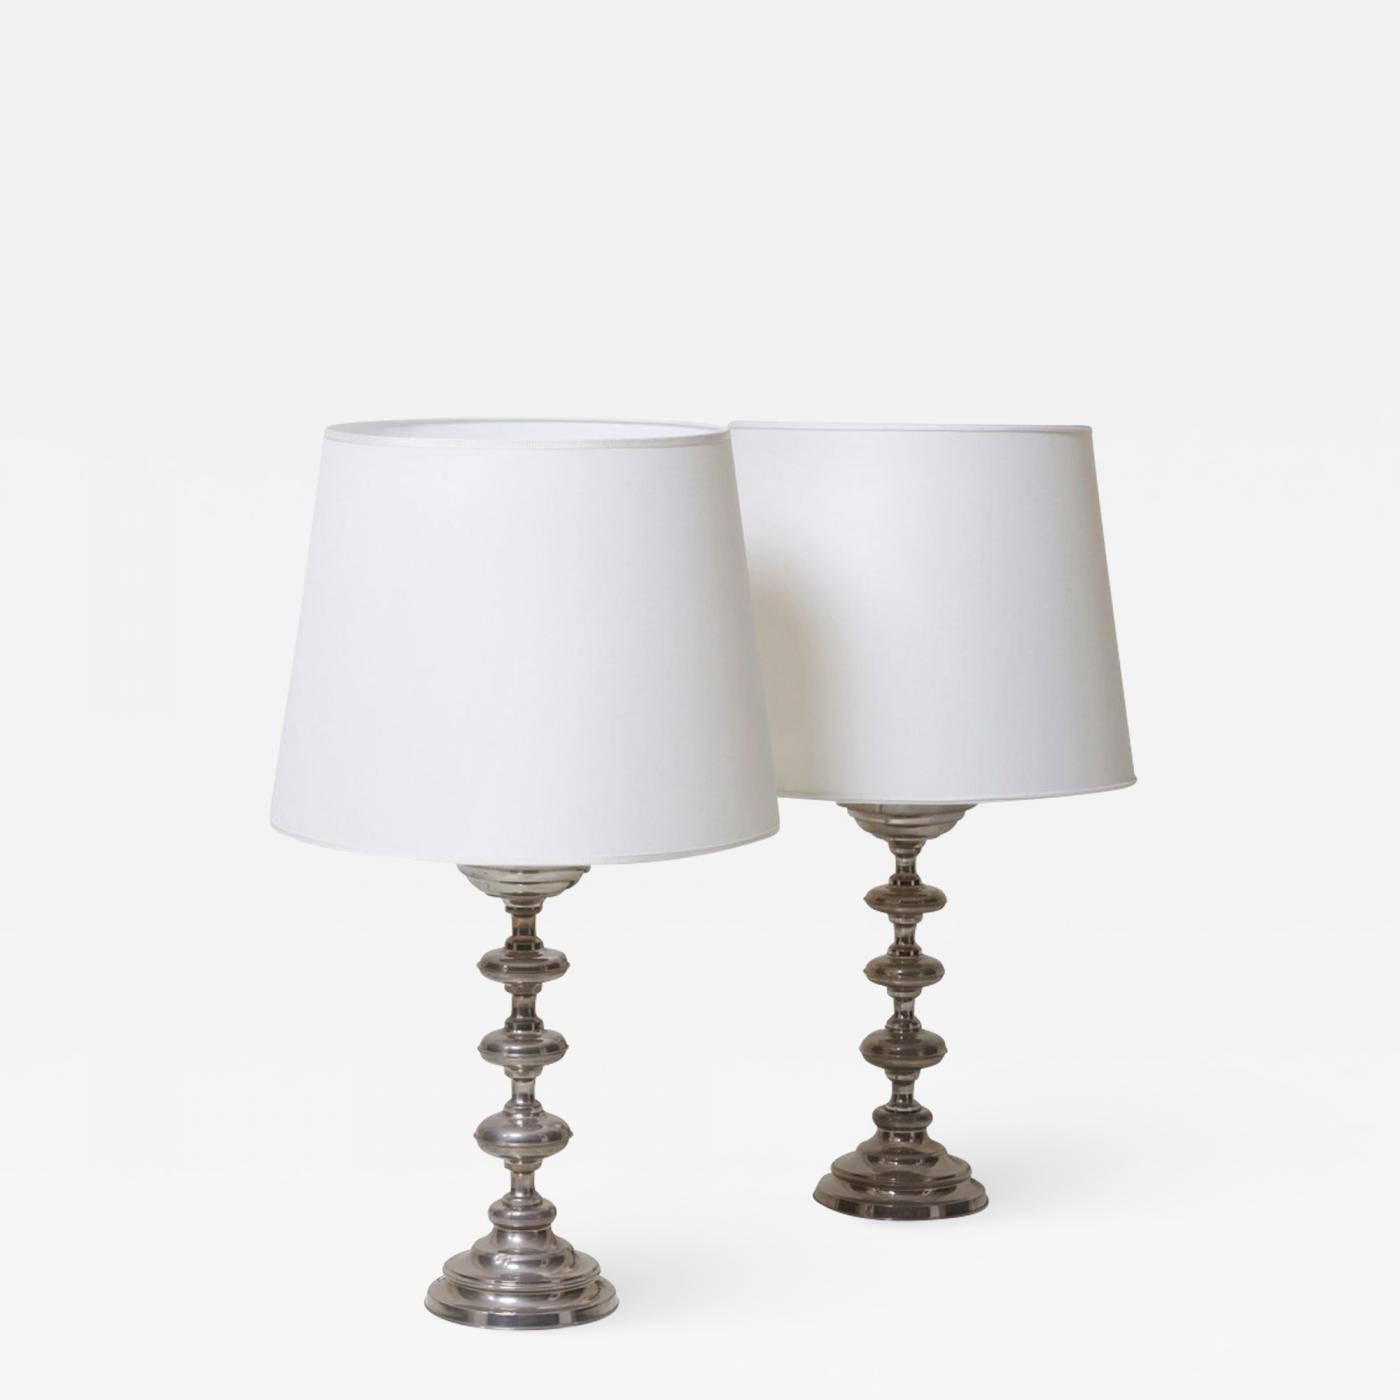 Ingo Maurer Ingo Maurer Pair Of Ingo Maurer Table Lamps Germany 1970s